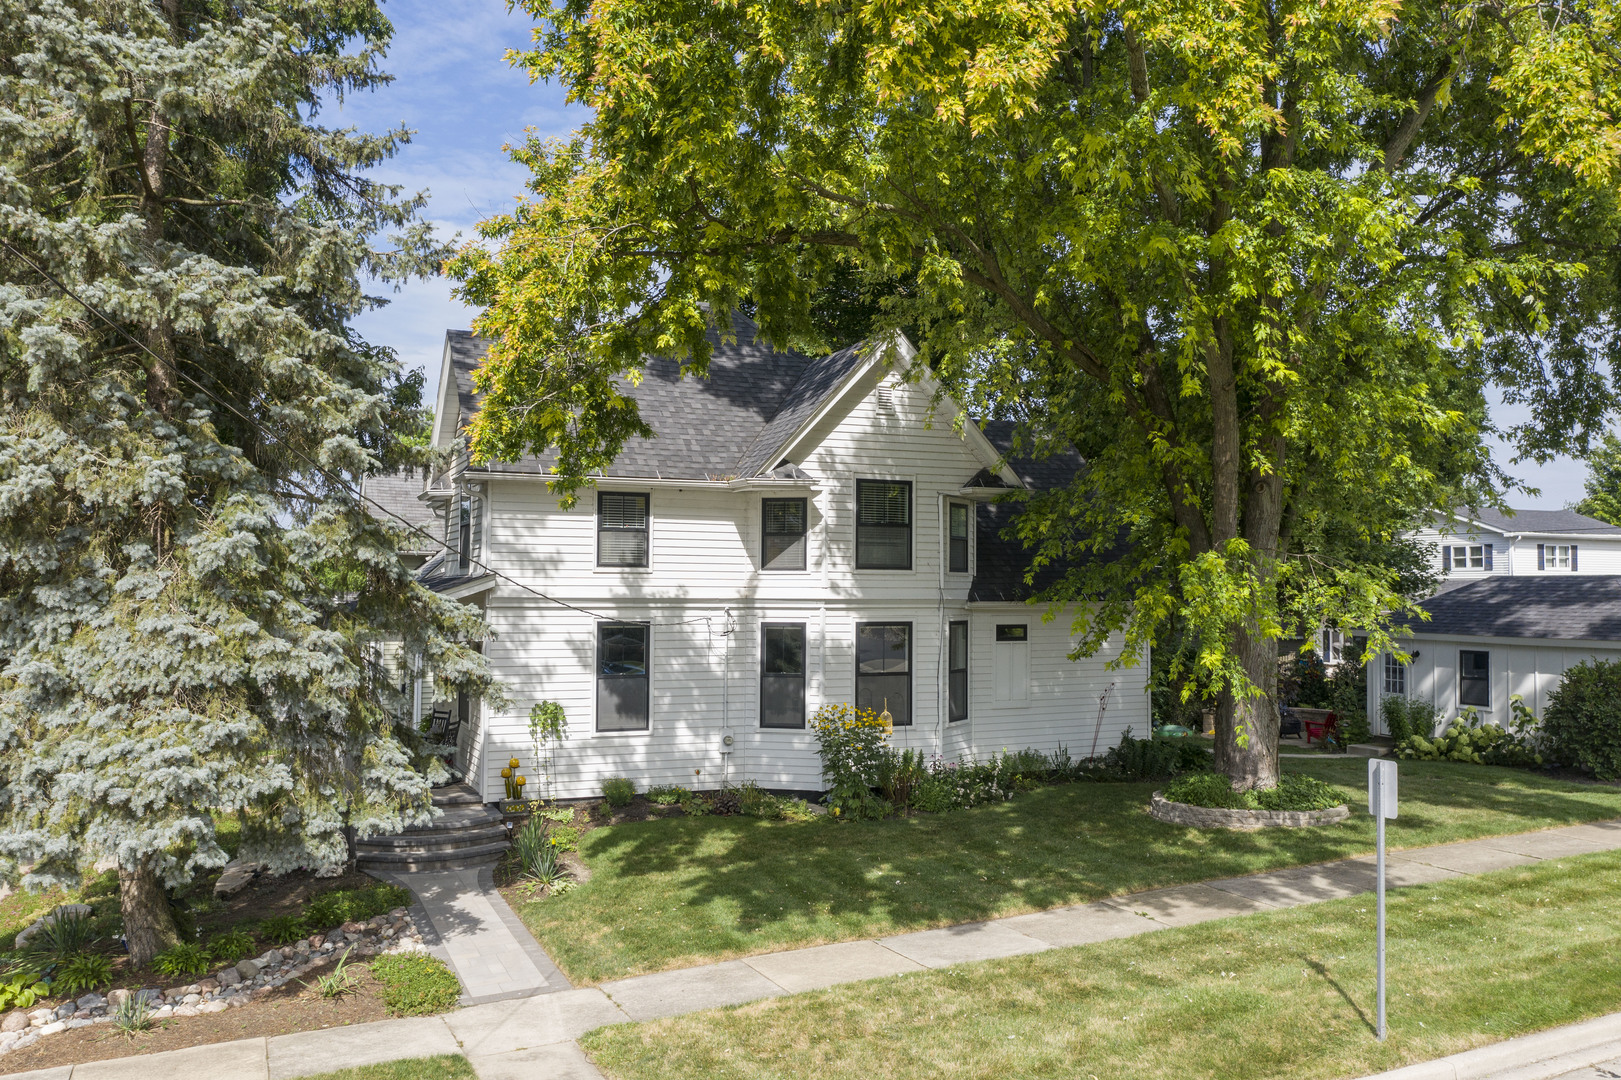 316 SOUTH, ST. CHARLES, Illinois, 60174